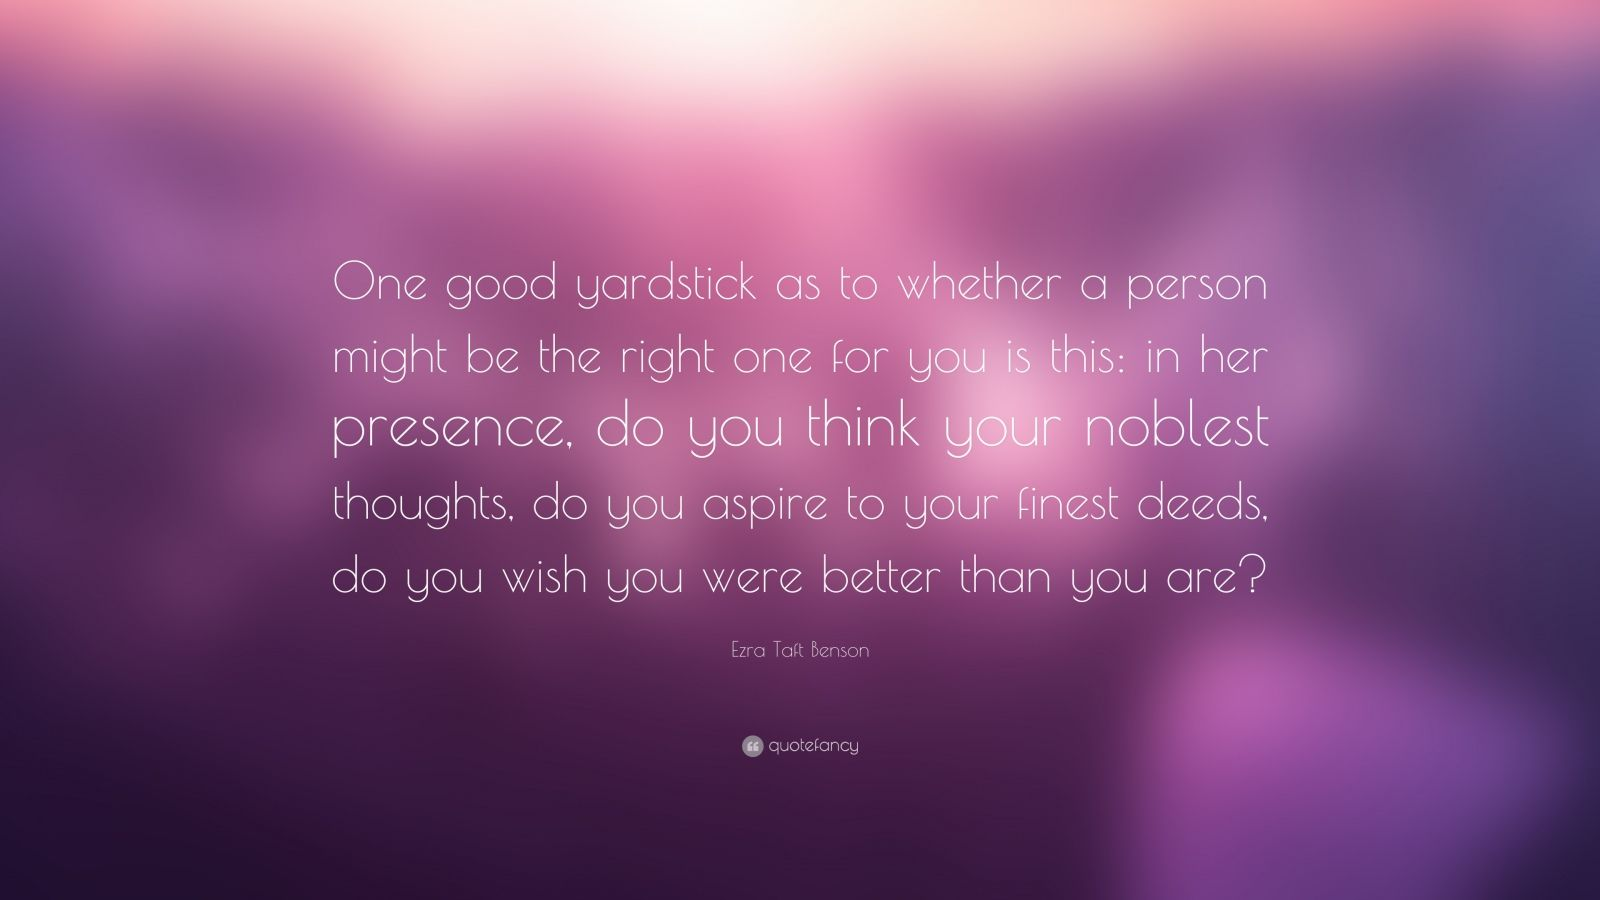 """Ezra Taft Benson Quote: """"One good yardstick as to whether a person might be the right one for you is this: in her presence, do you think your noblest thoughts, do you aspire to your finest deeds, do you wish you were better than you are?"""""""